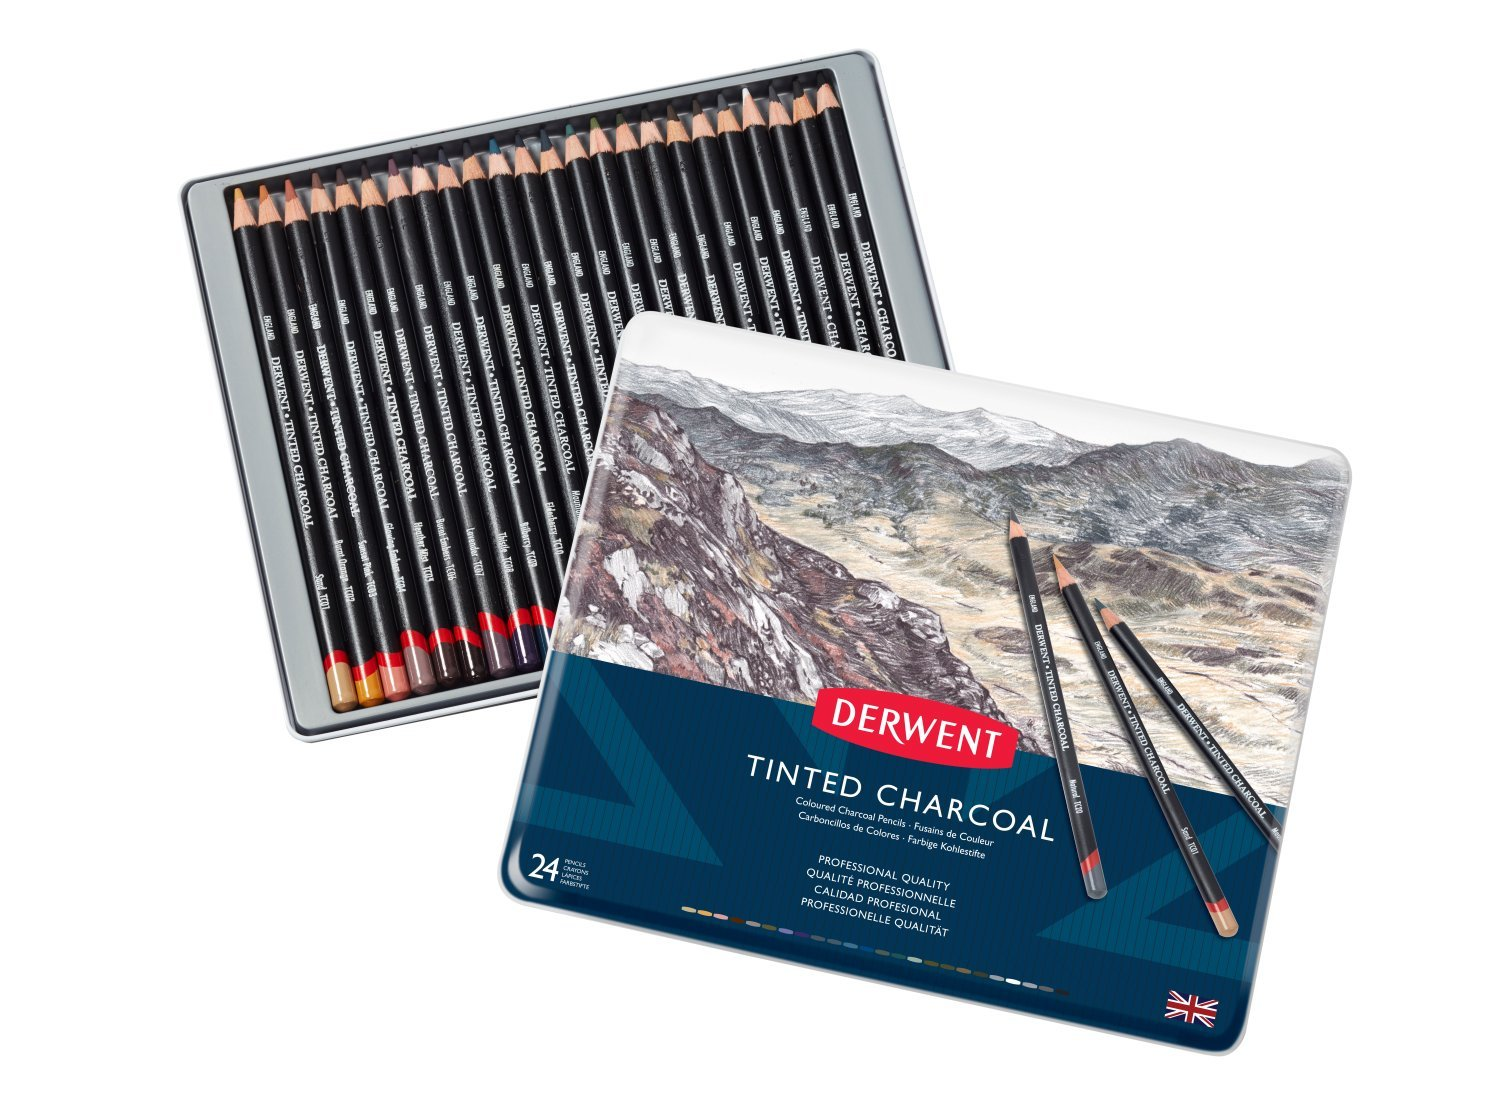 Derwent Tinted Charcoal Pencils, 4mm Core, Metal Tin, 24 Count (2301691) by Derwent (Image #2)